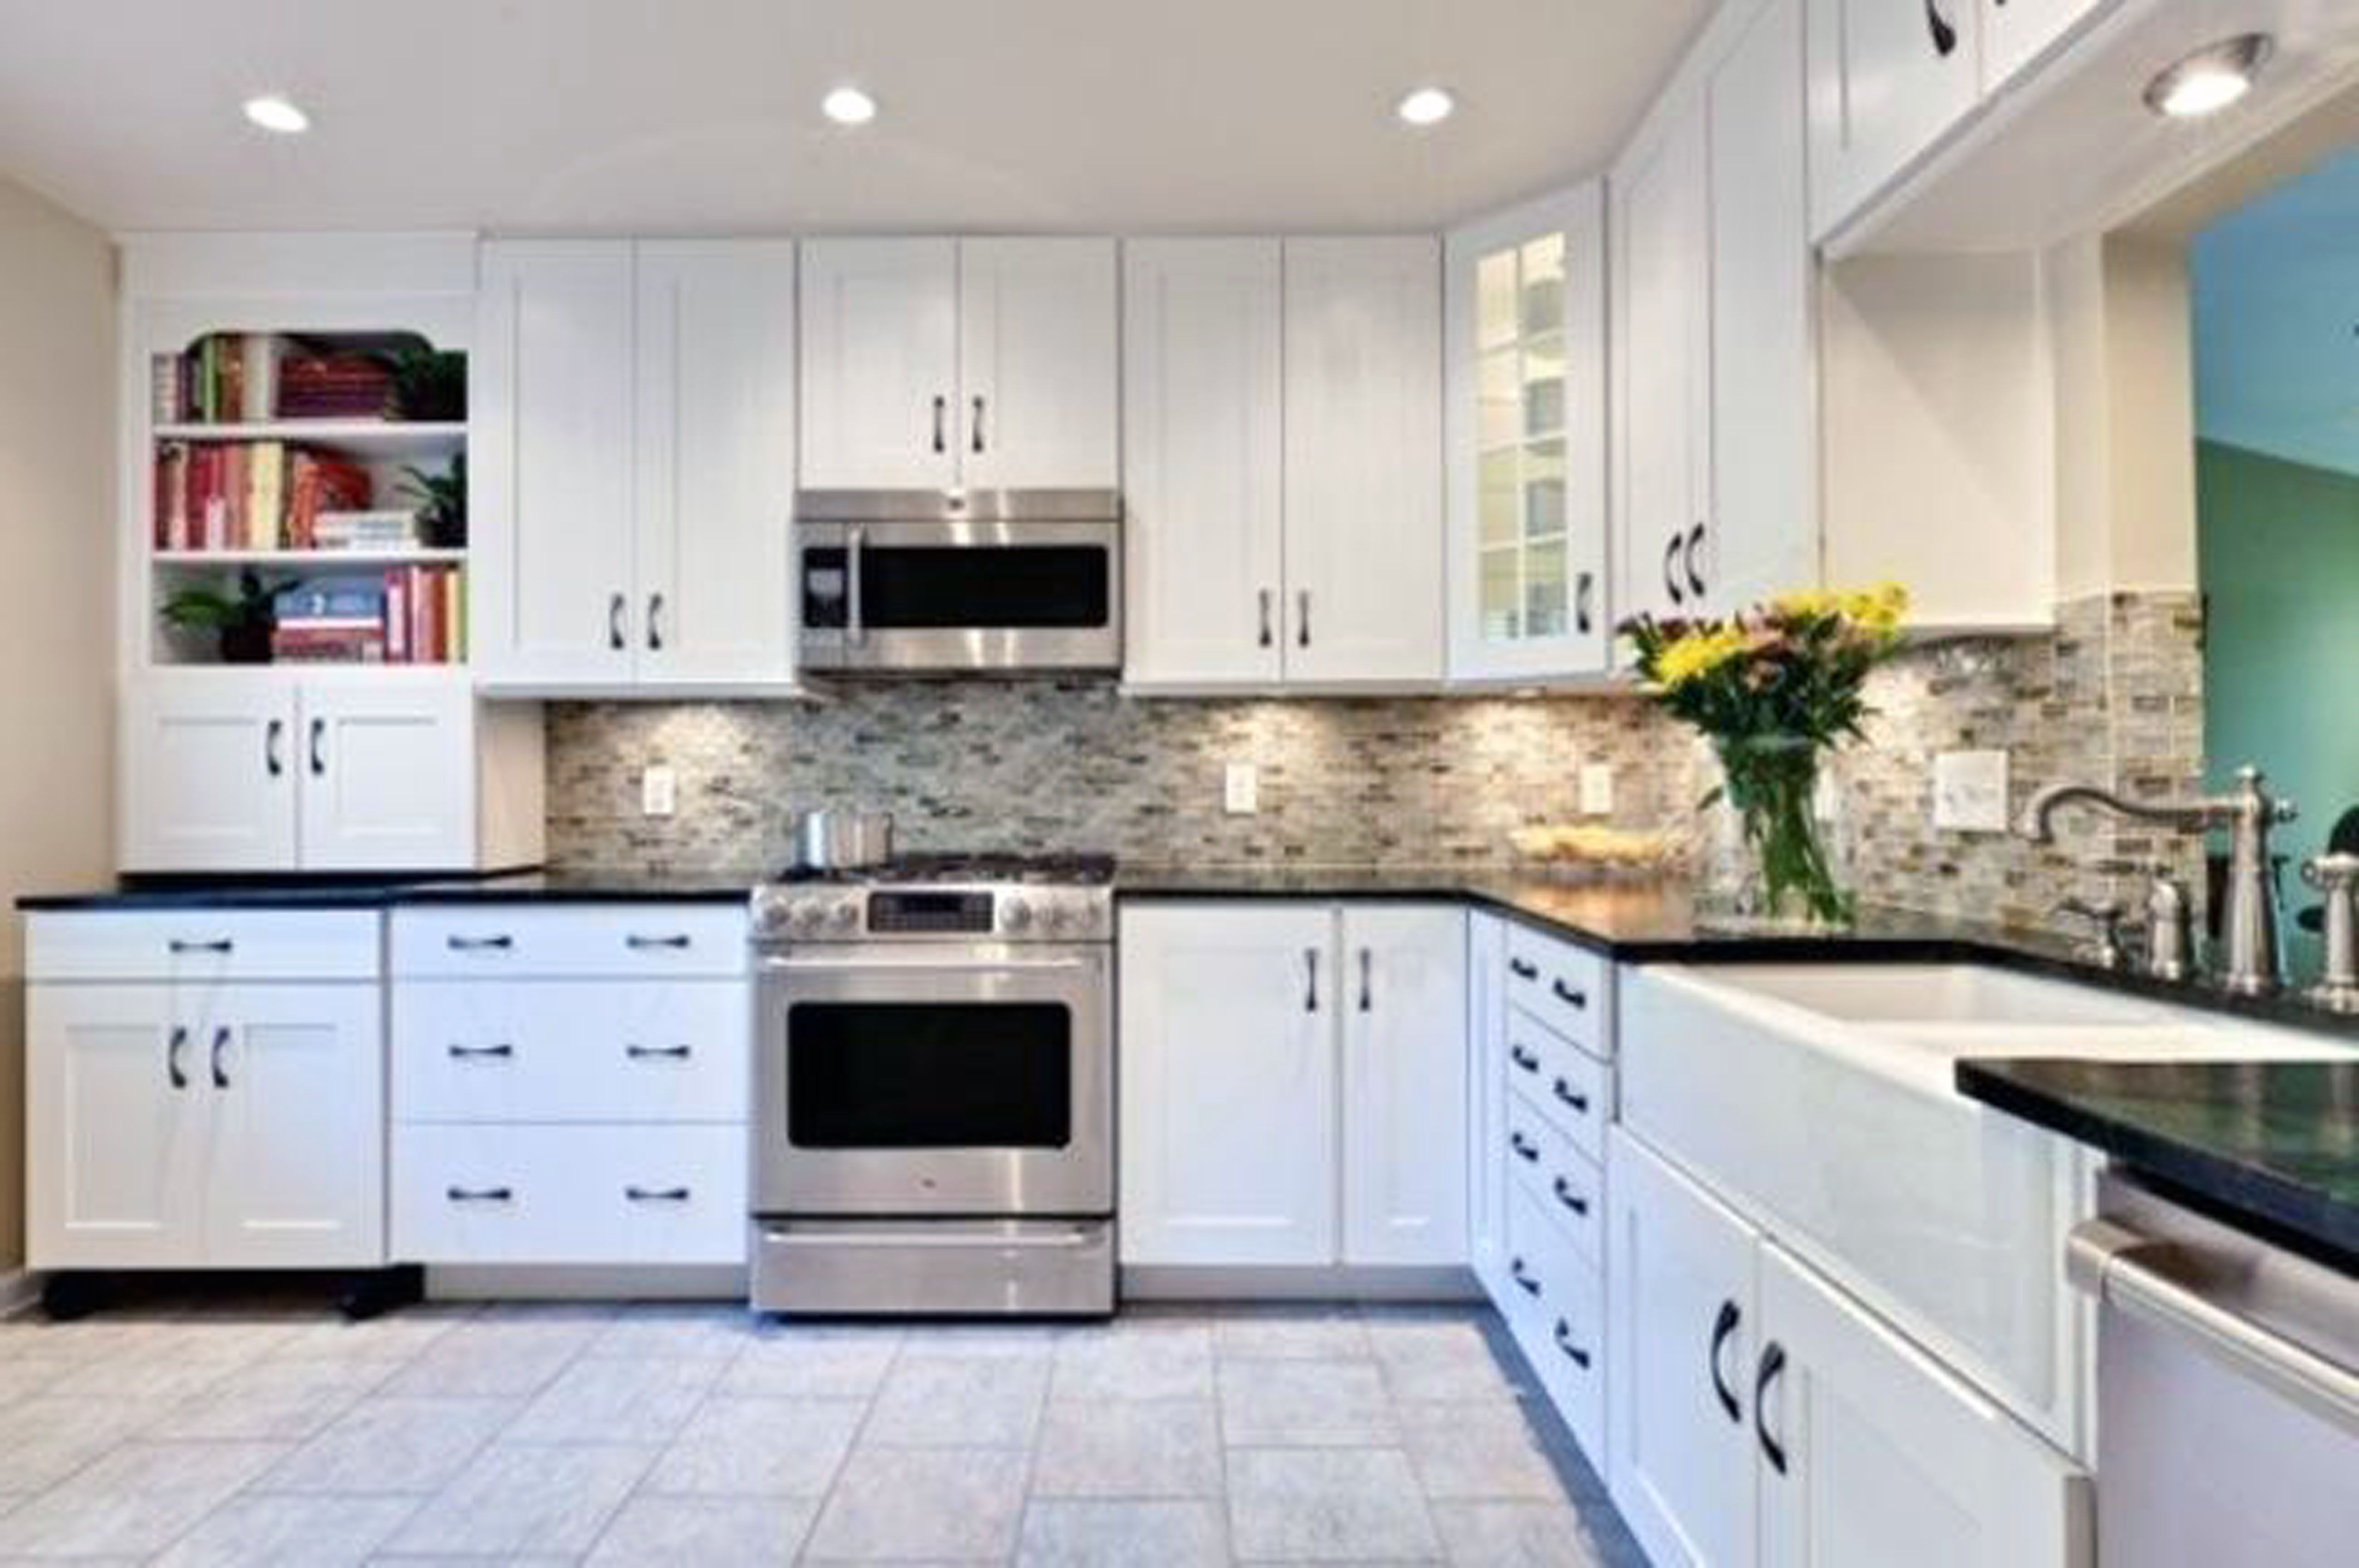 white kitchen cabinets with black countertops ... bookcase a perfect white kitchen cabinets with black IFABXNJ